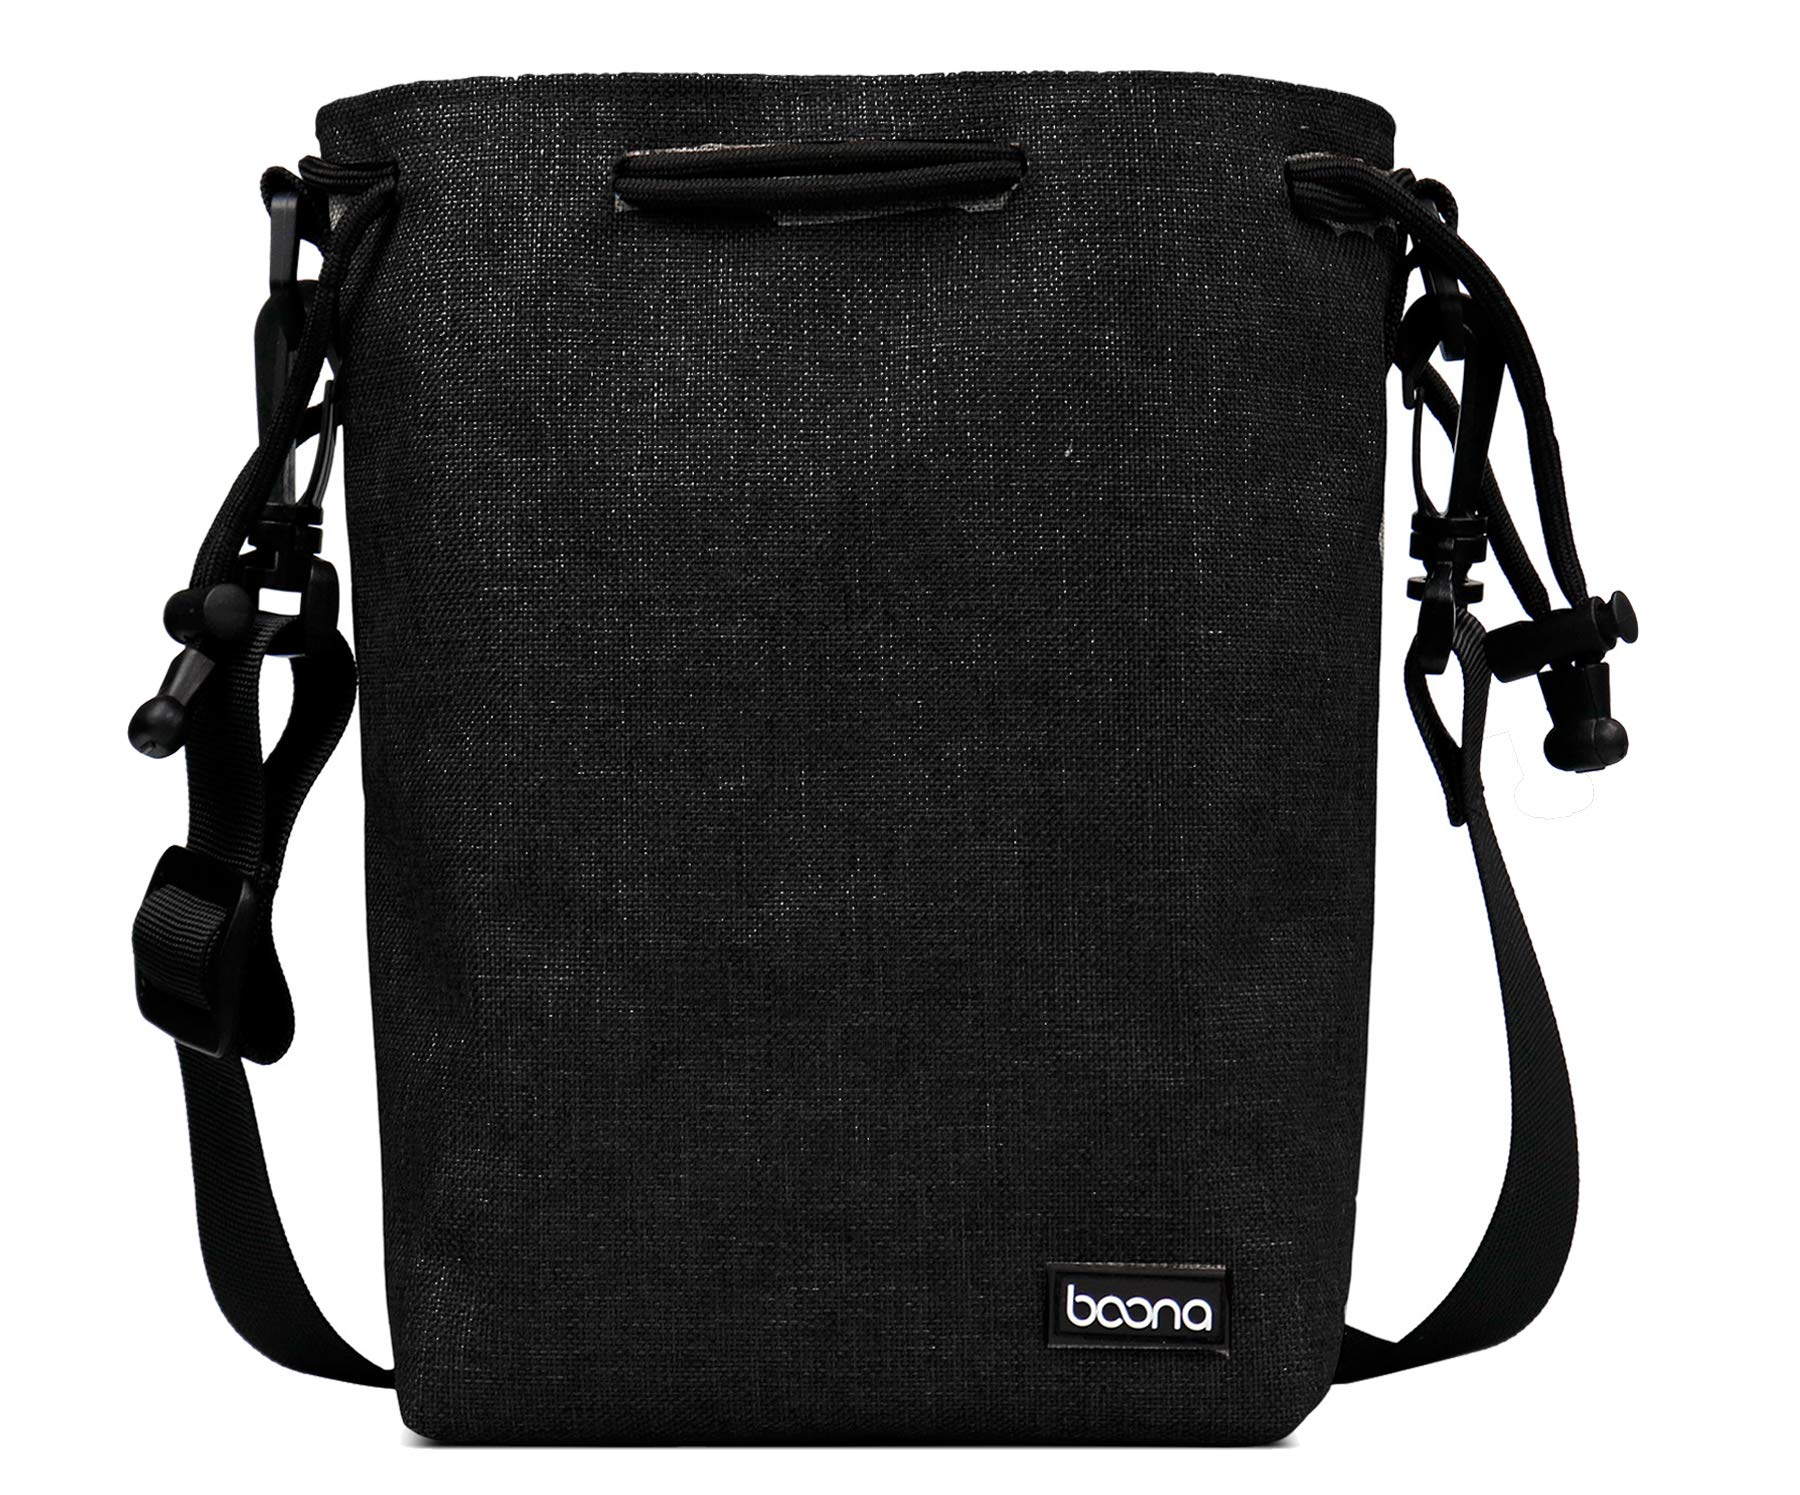 BOONA Camera Lens Bag with Shoulder Strap, Thick Water Resistant Outer with Inner Soft Plush Lence Pouch for DSLR Camera Lens -Large(6.7'' L x 4.2''W x 9.4'' H),Black by BOONA